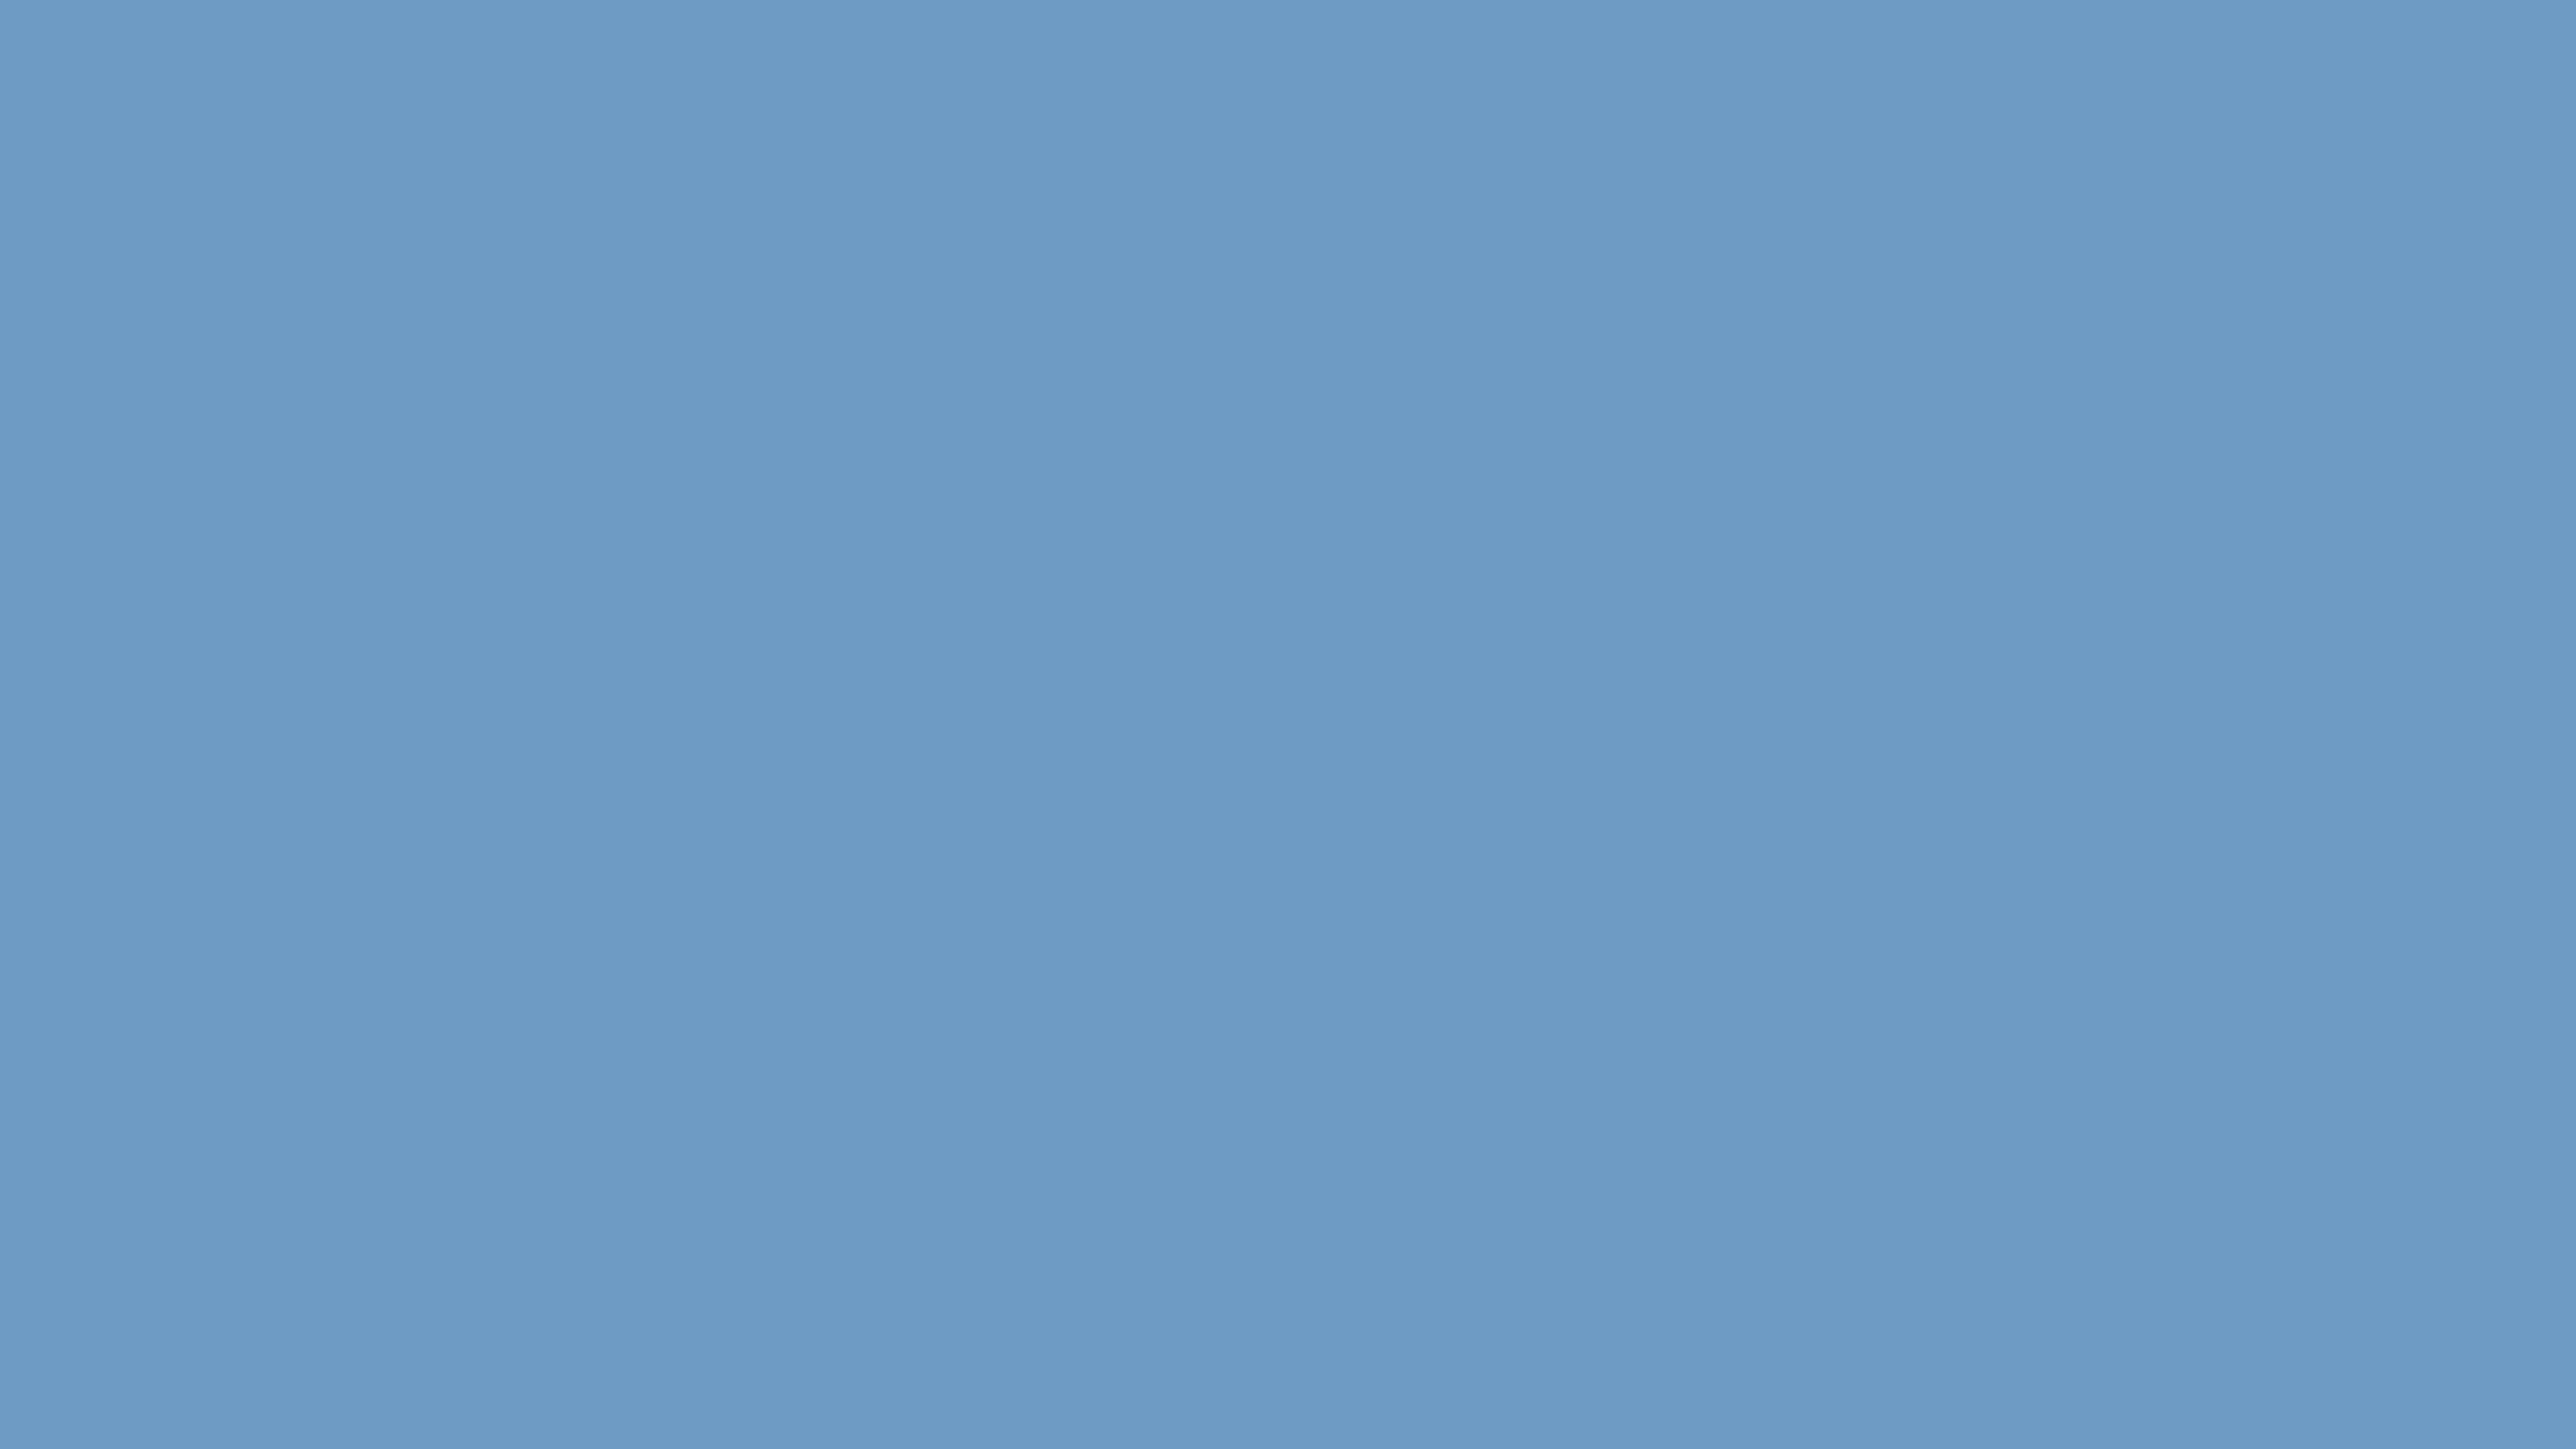 5120x2880 Cerulean Frost Solid Color Background